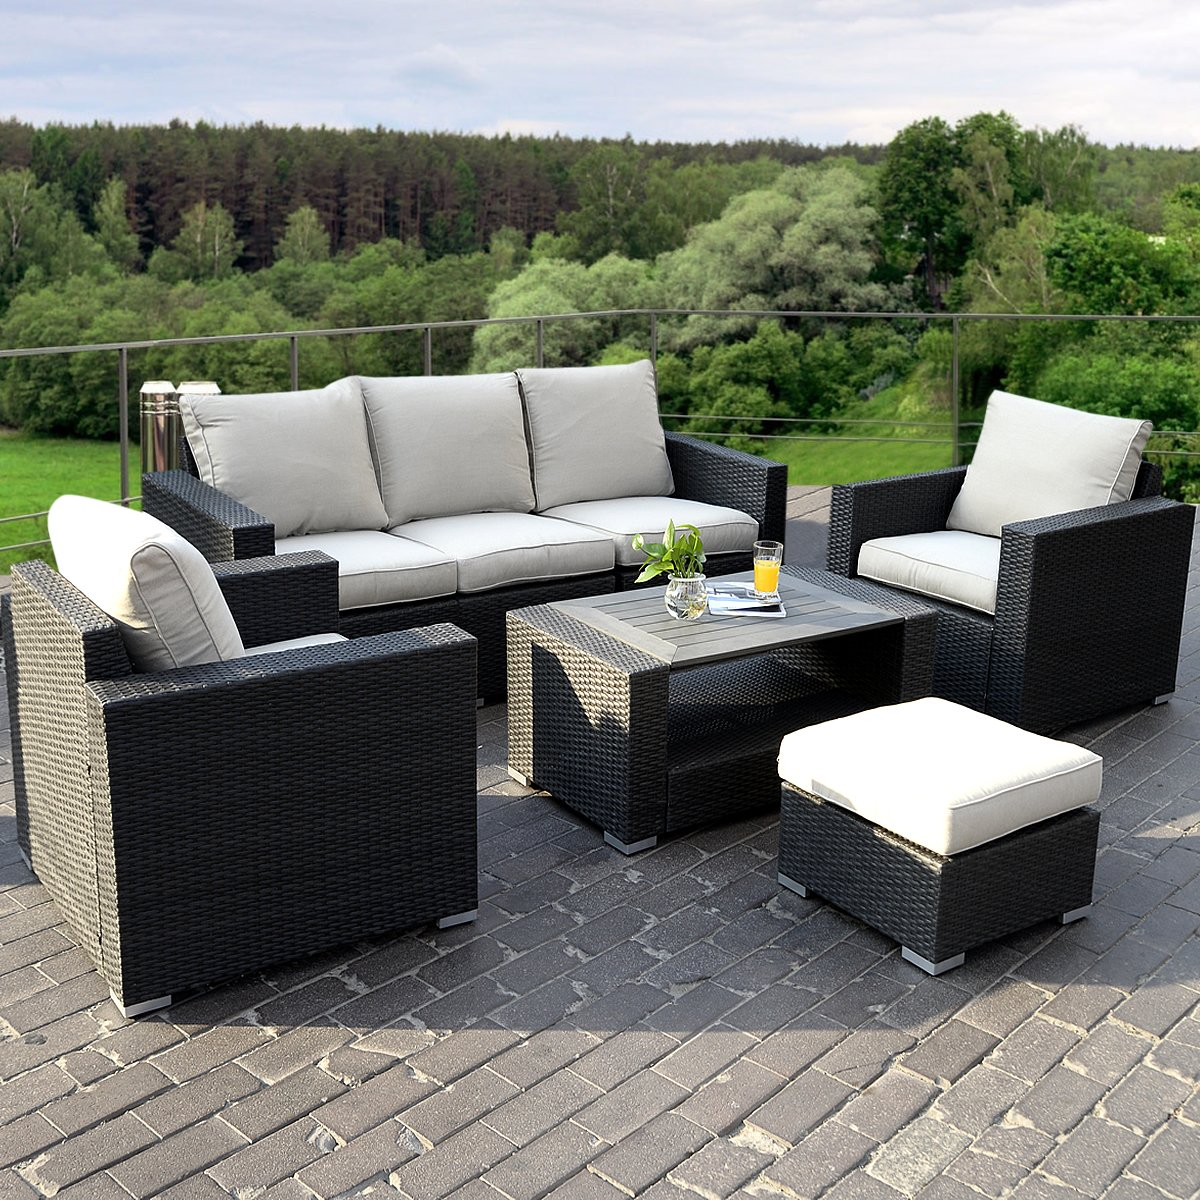 17tlg lounge set gartenm bel loungem bel polyratten sitzgruppe gartengarnitur m belgarnitur. Black Bedroom Furniture Sets. Home Design Ideas